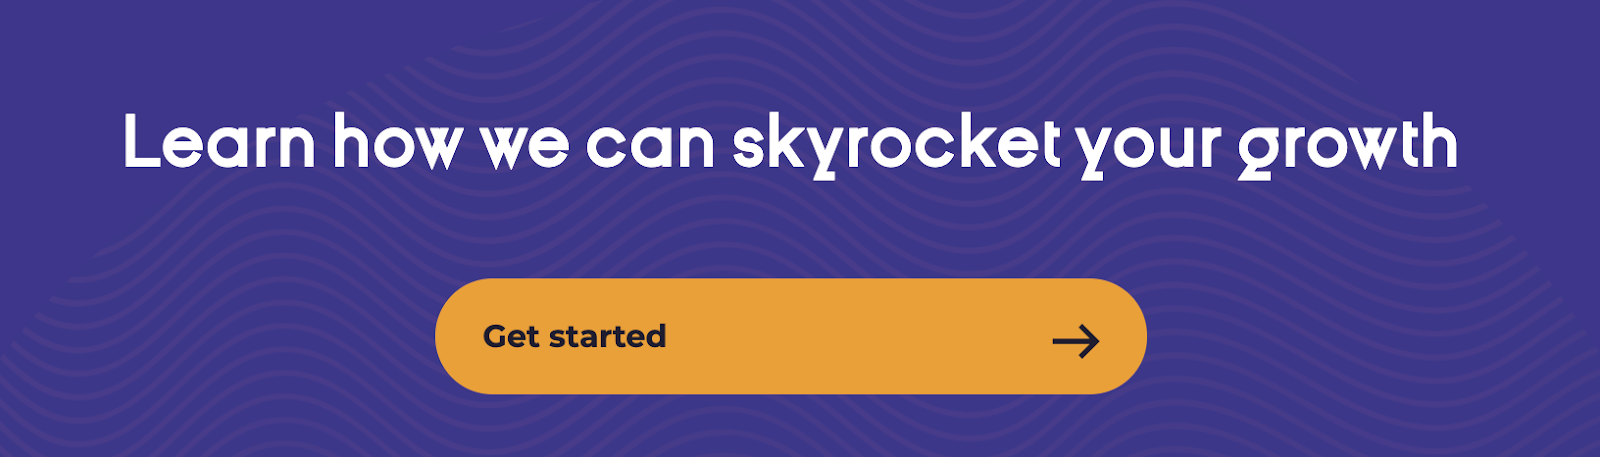 White-colored text showing: Learn how we can skyrocket your growth with a purple background.